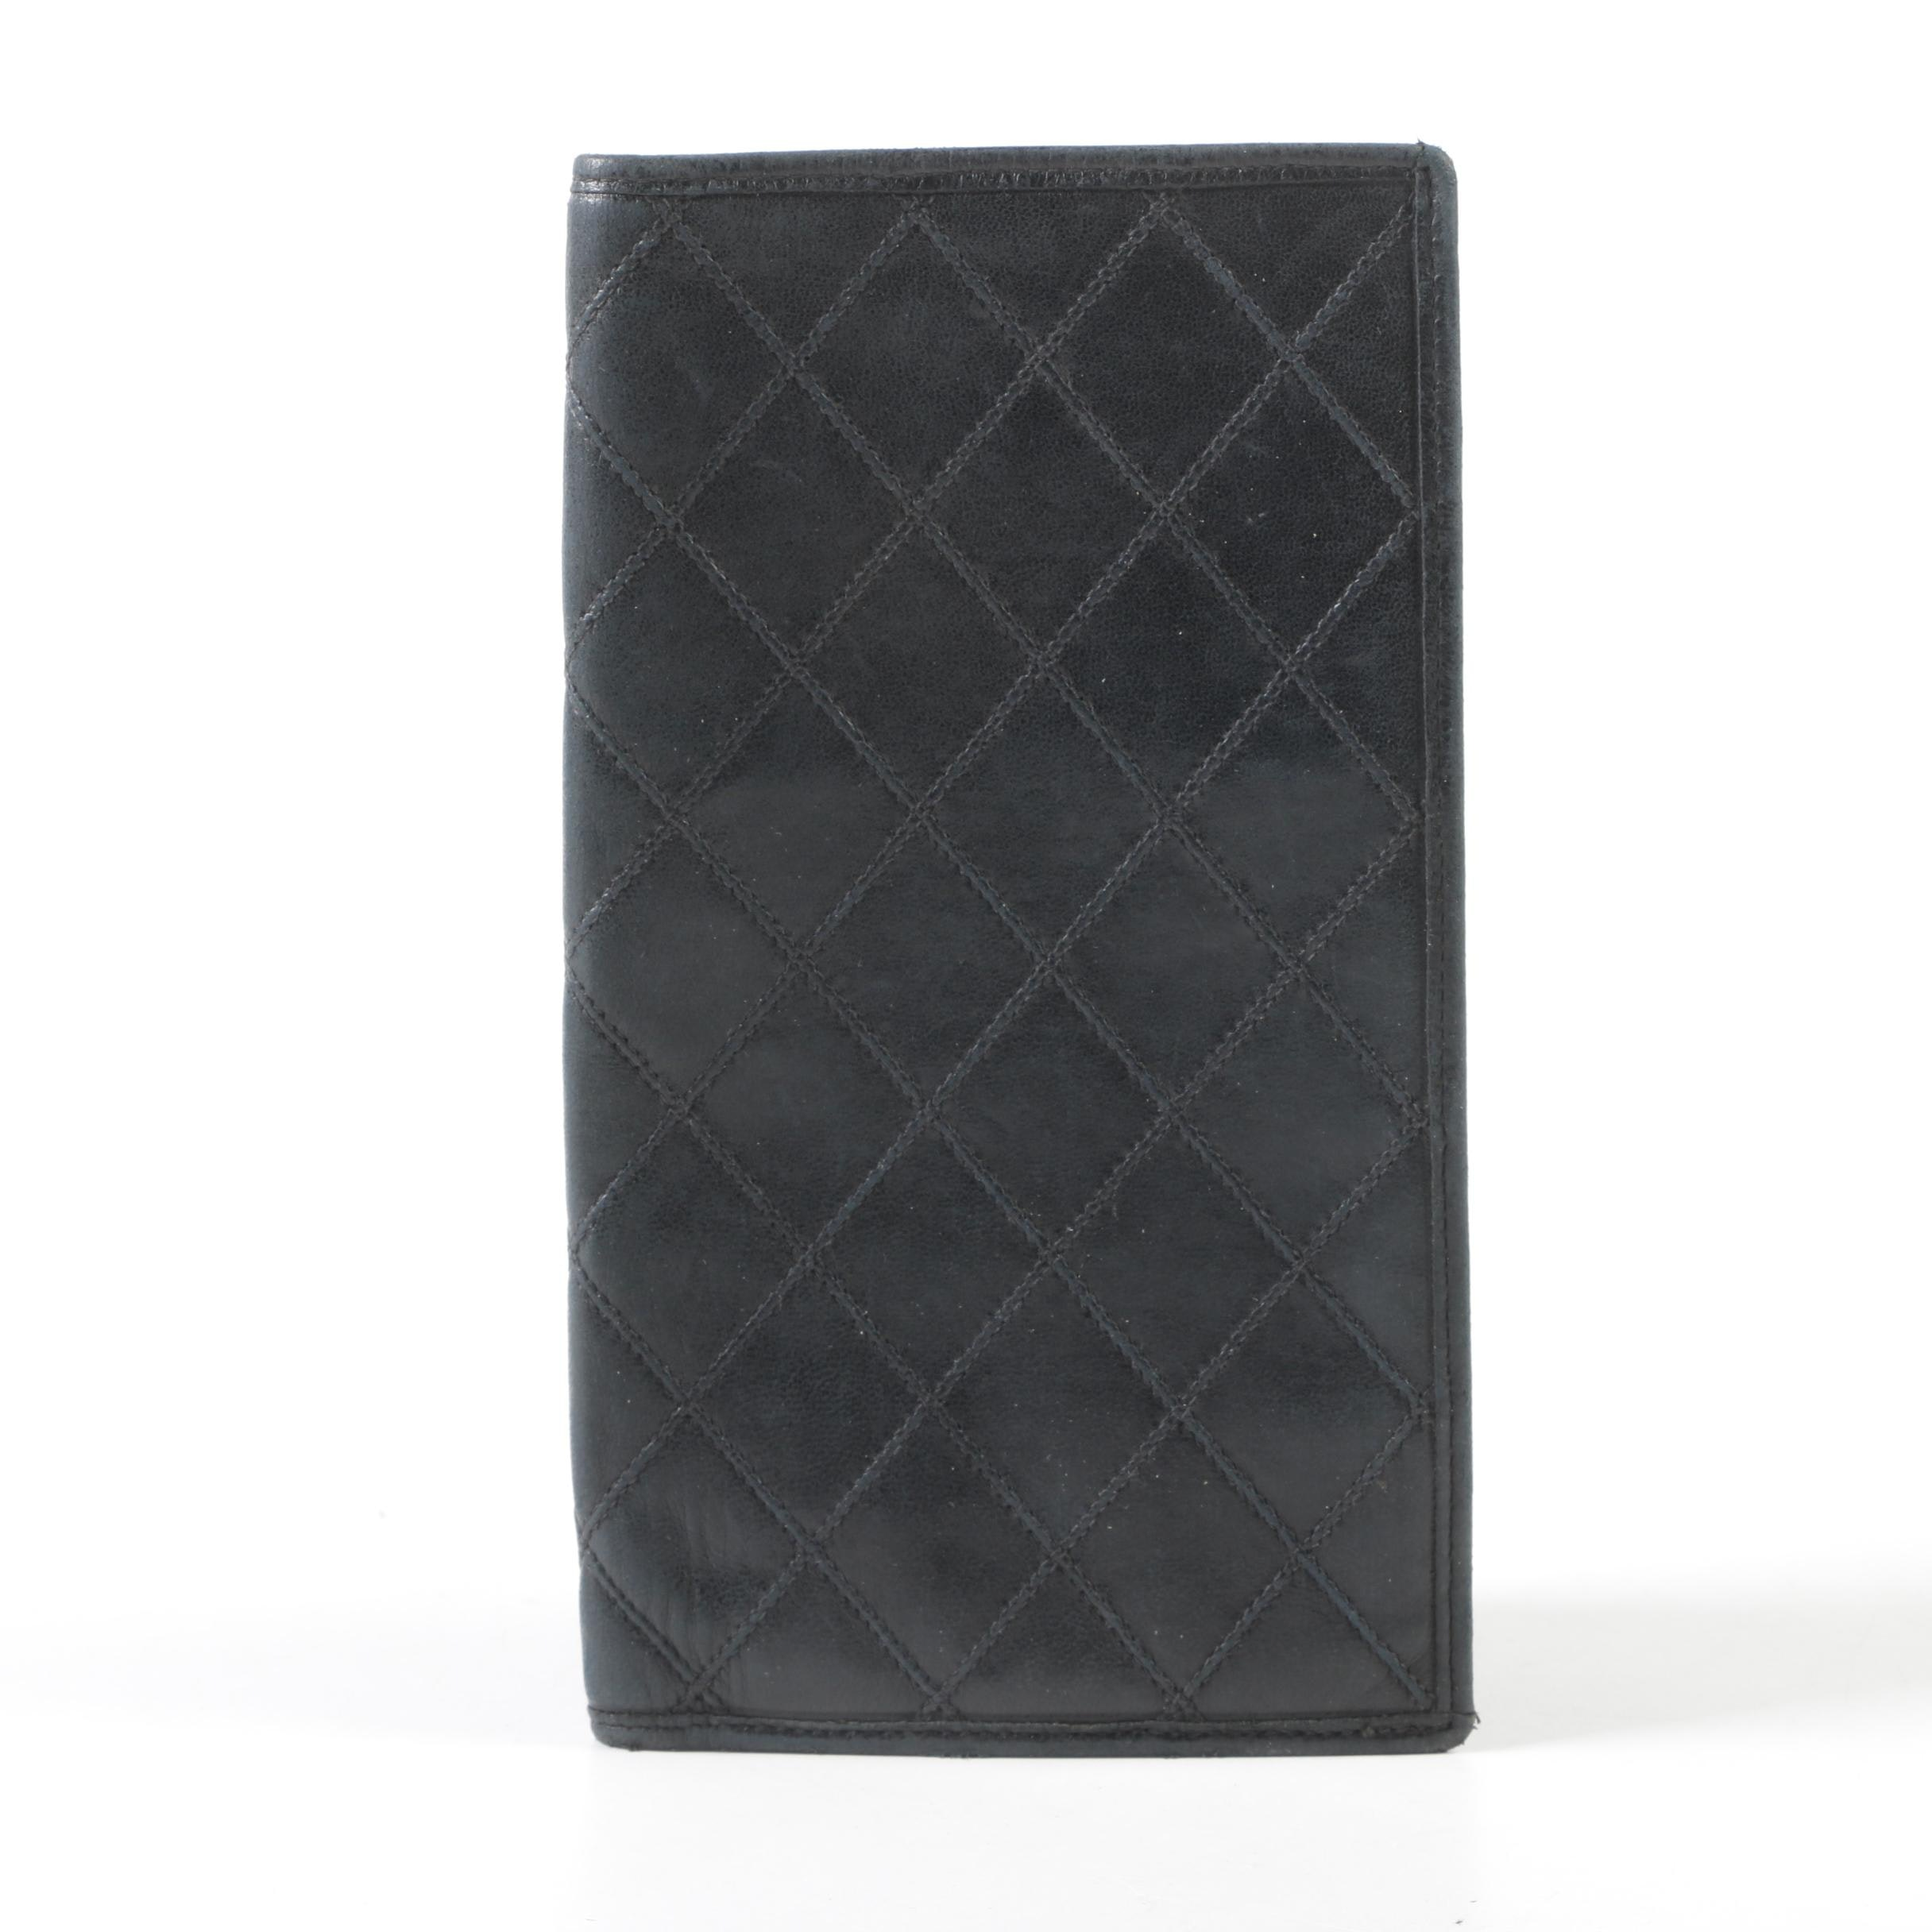 Chanel Black Quilted Lambskin Leather Long Bifold Wallet, Made in Italy